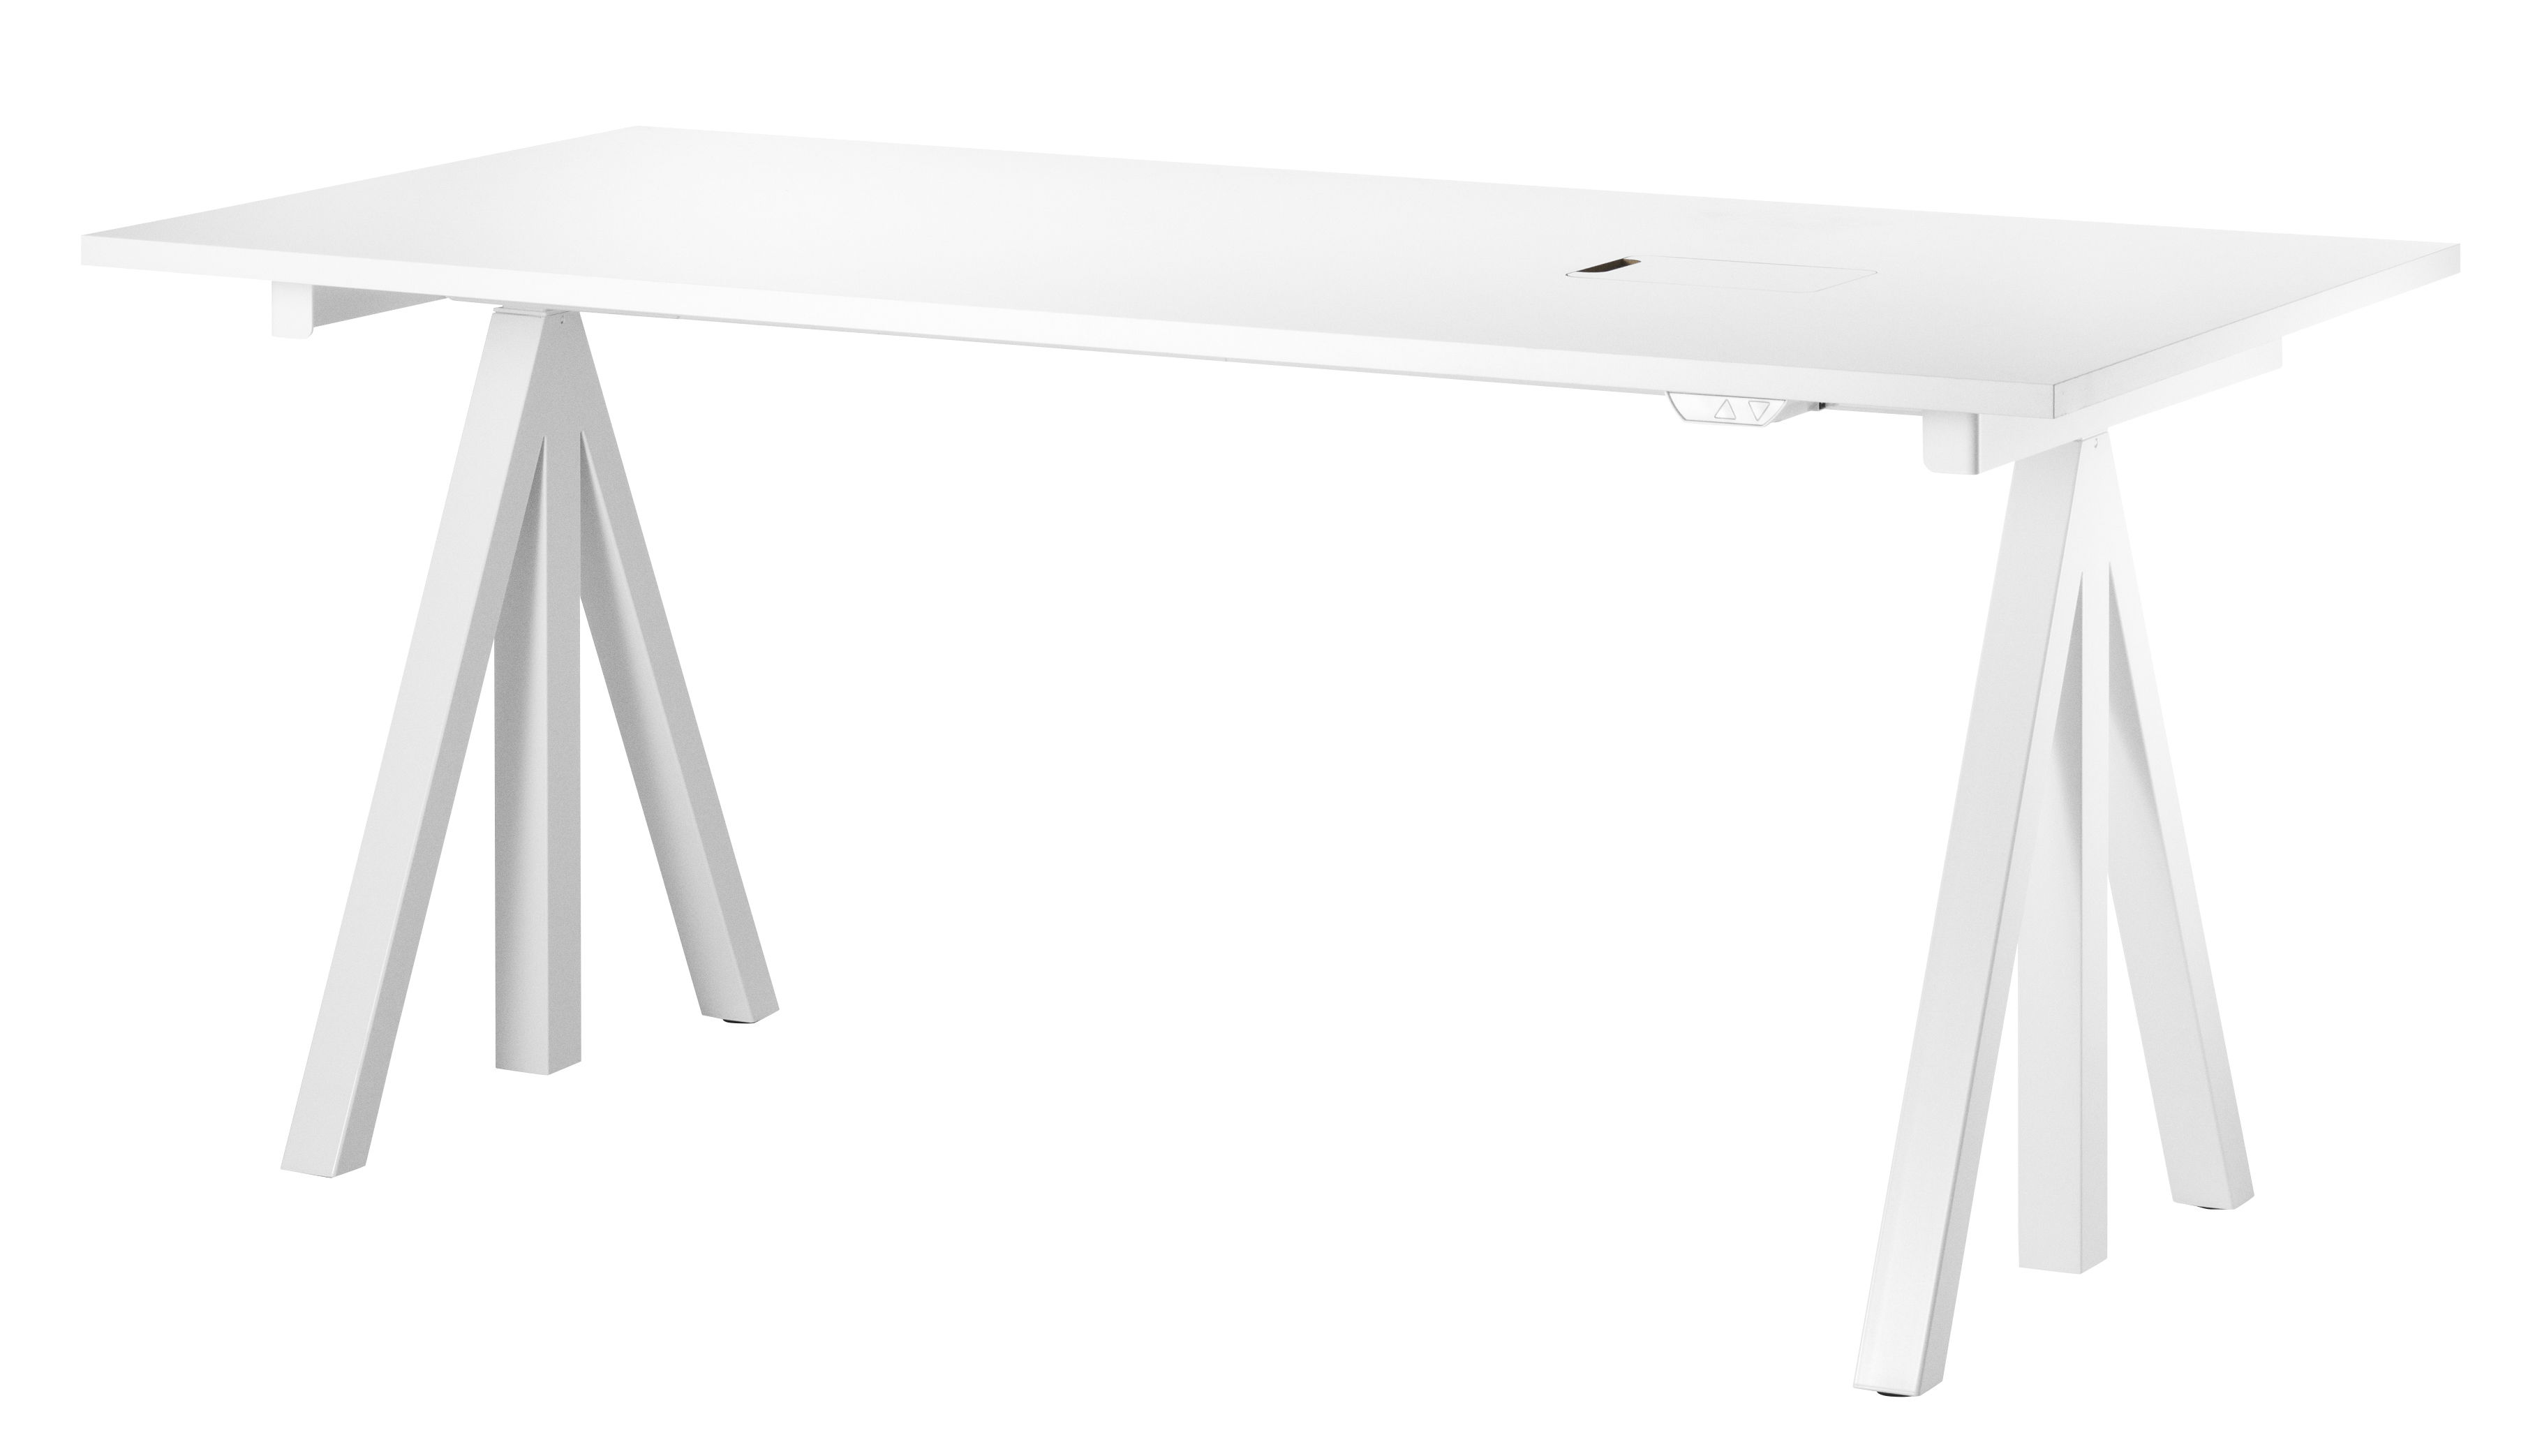 Furniture - Office Furniture - String Works Tray - For desk - L 160 by String Furniture - White - Lacquered MDF